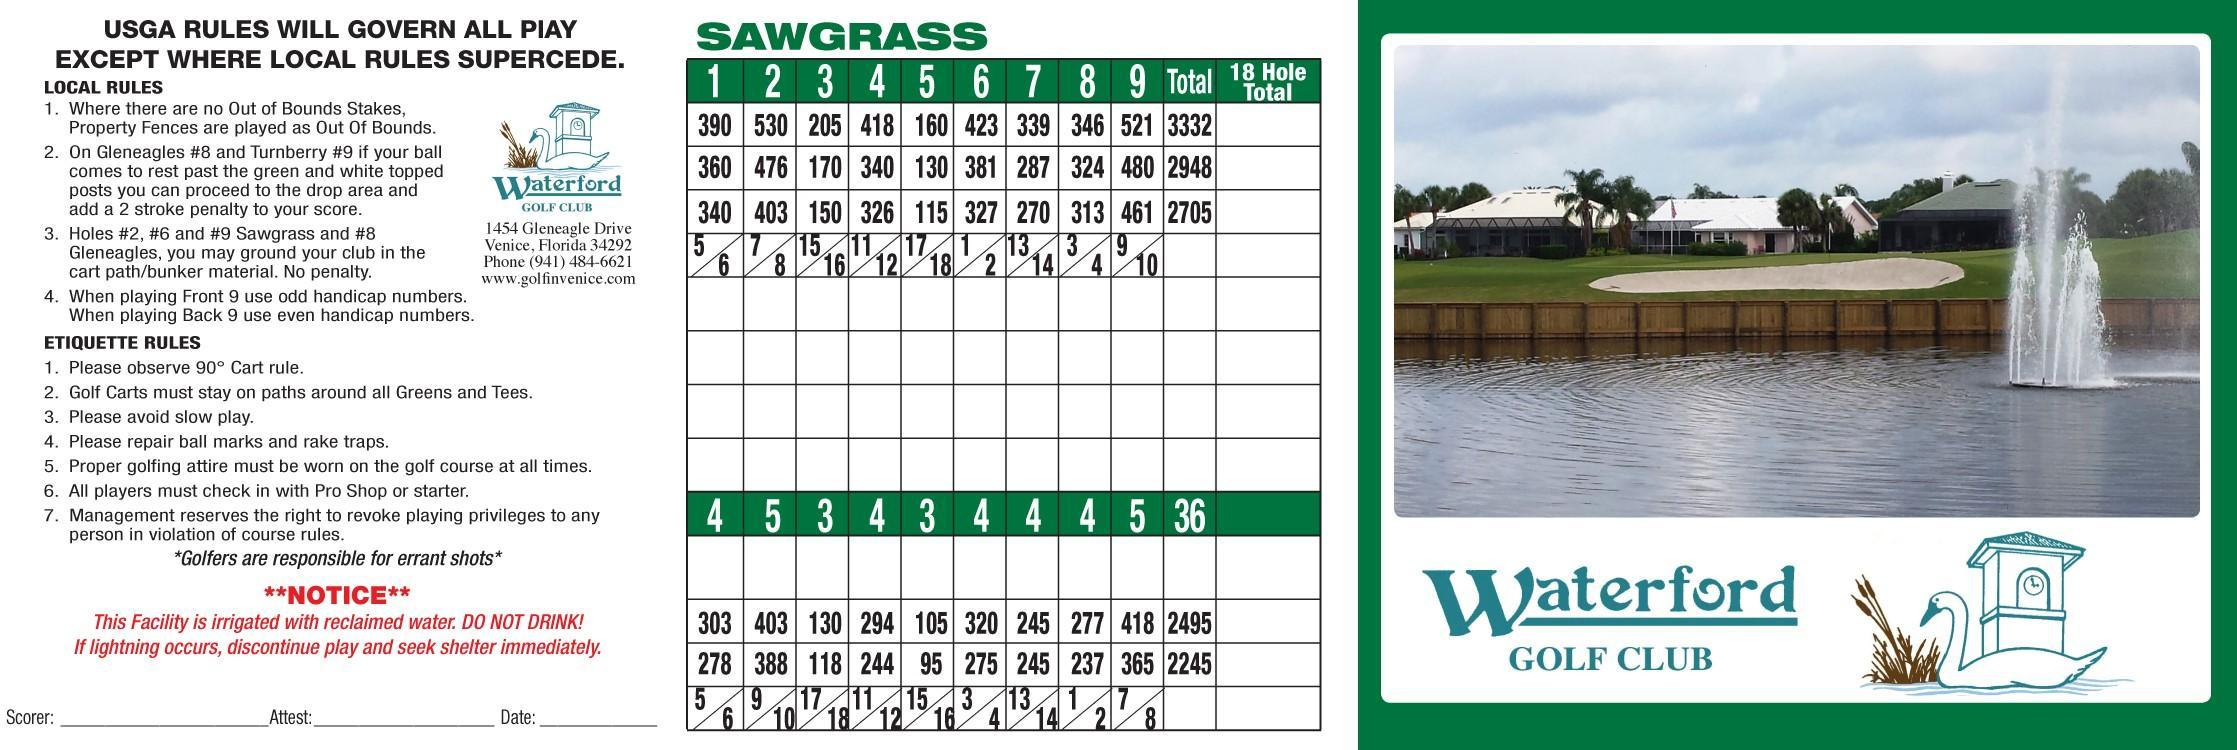 Waterford sawgrass 2018